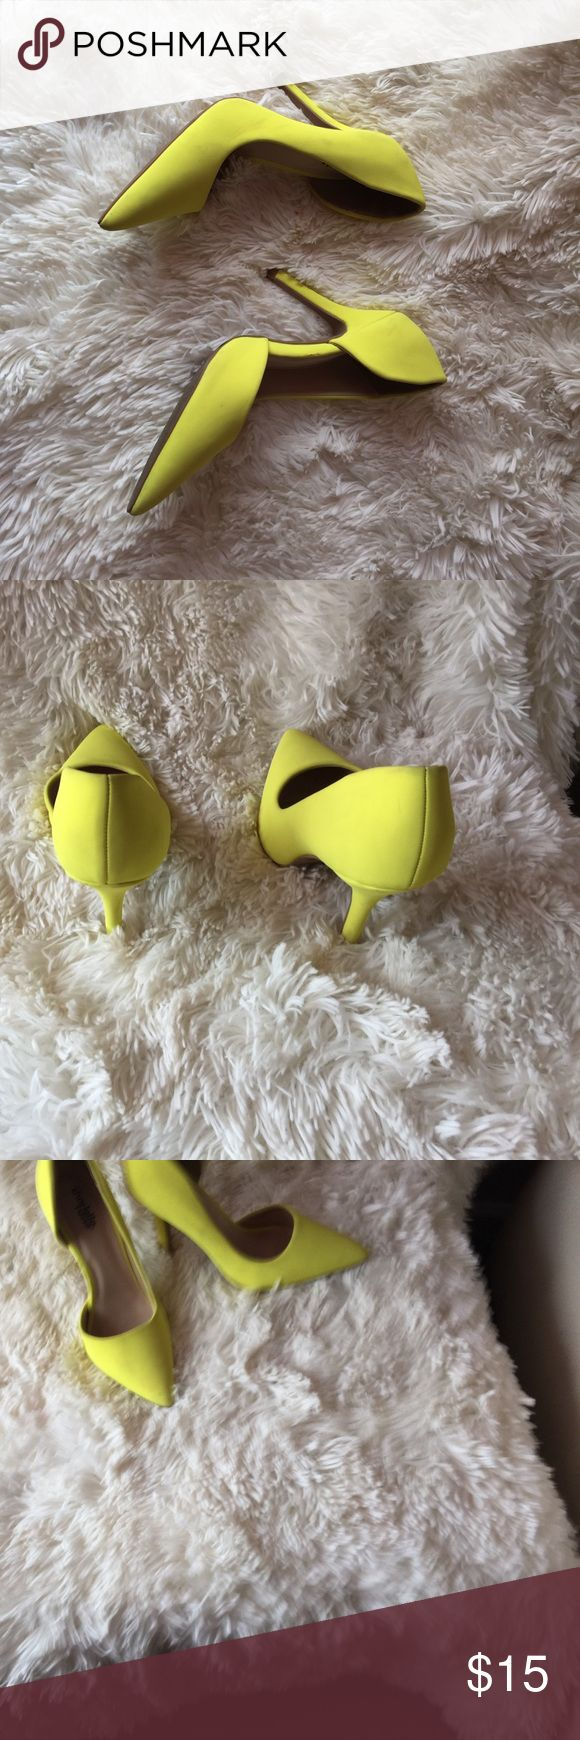 Selling this Neon yellow heels. TREND on Poshmark! My username is: essence_iman. #shopmycloset #poshmark #fashion #shopping #style #forsale #Charlotte Russe #Shoes